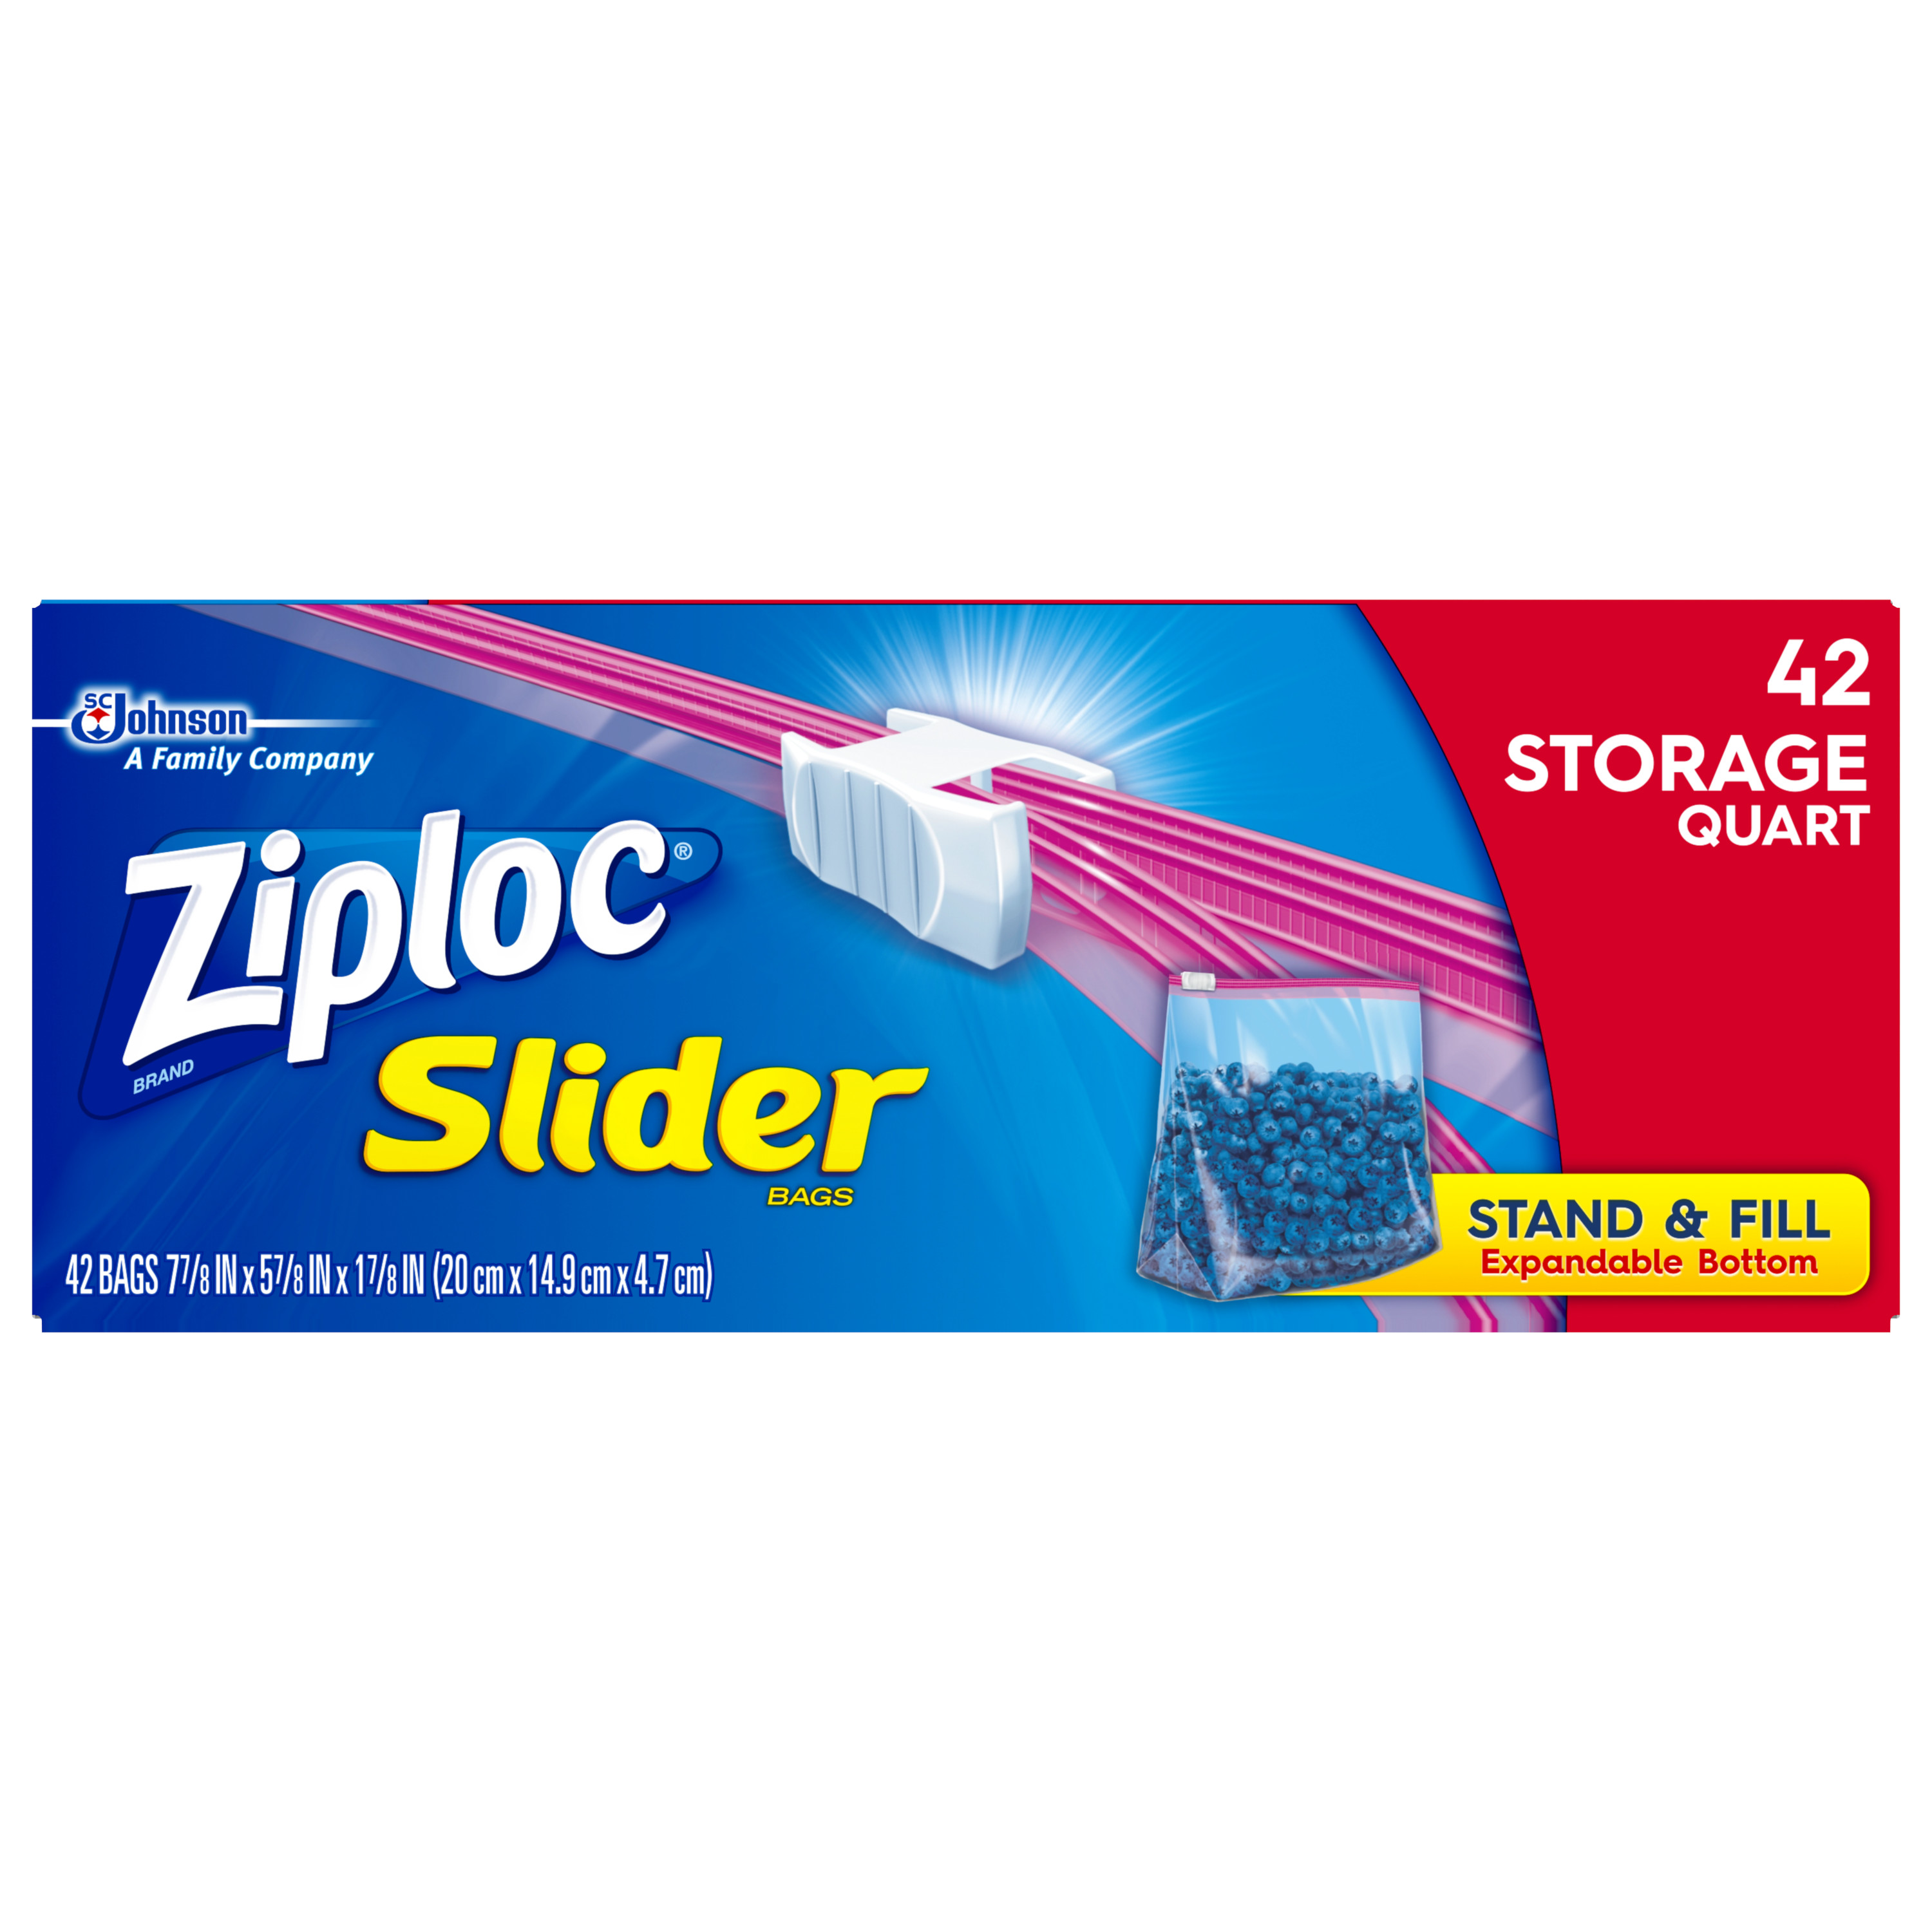 Ziploc Slider Storage Bags Quart 42 count